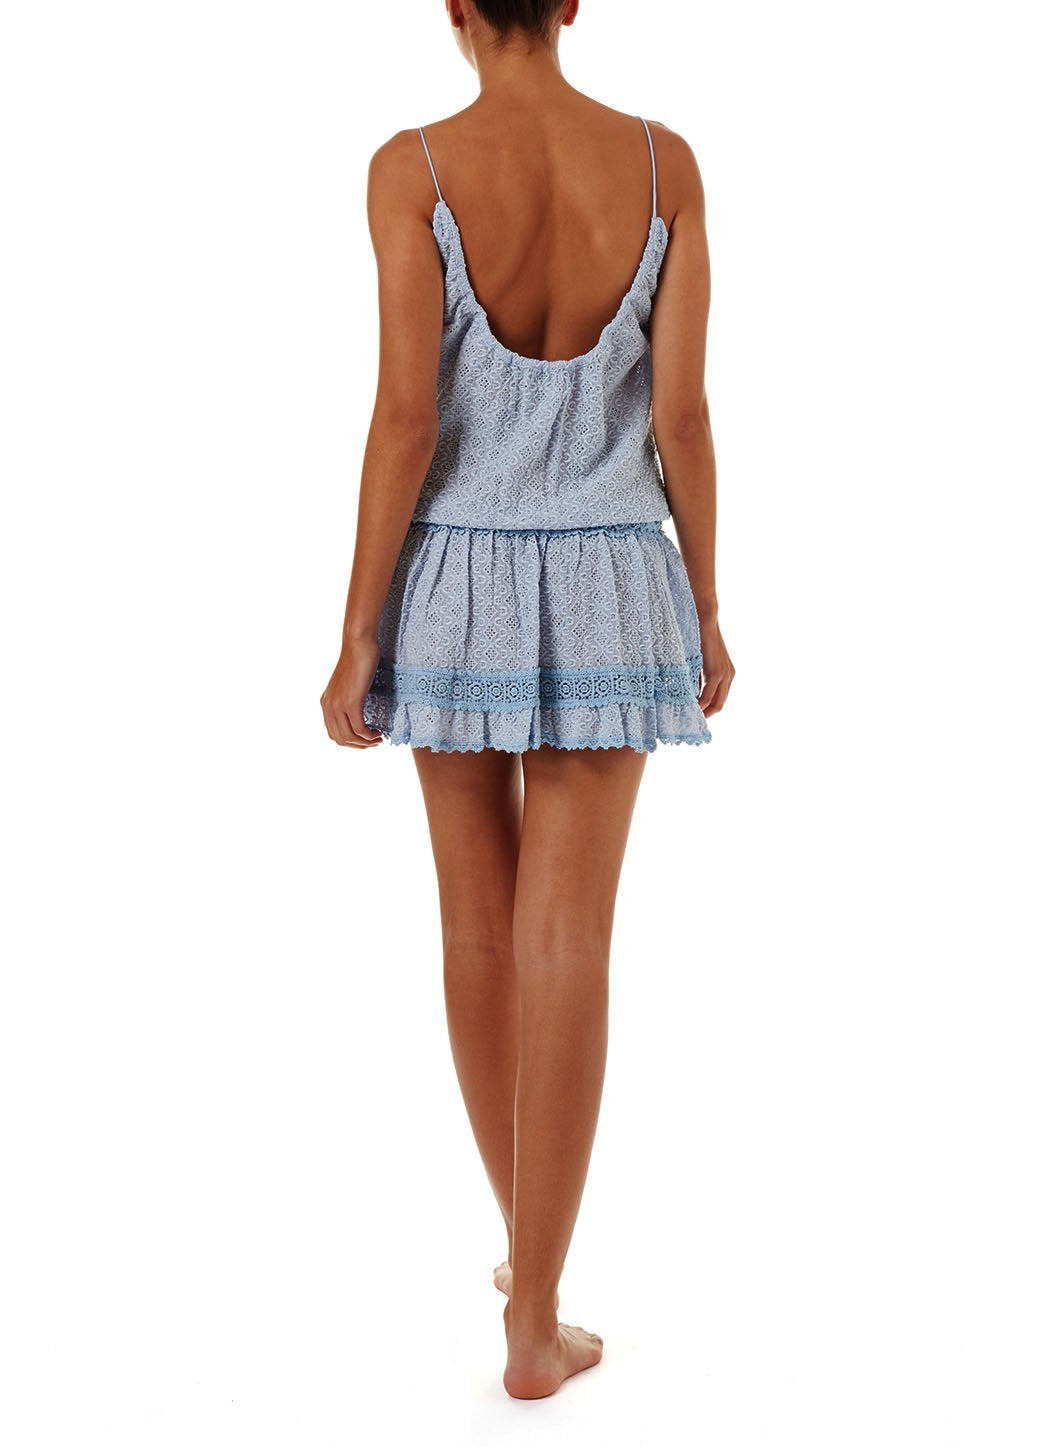 chelsea maya openback short beach dress 2019 B